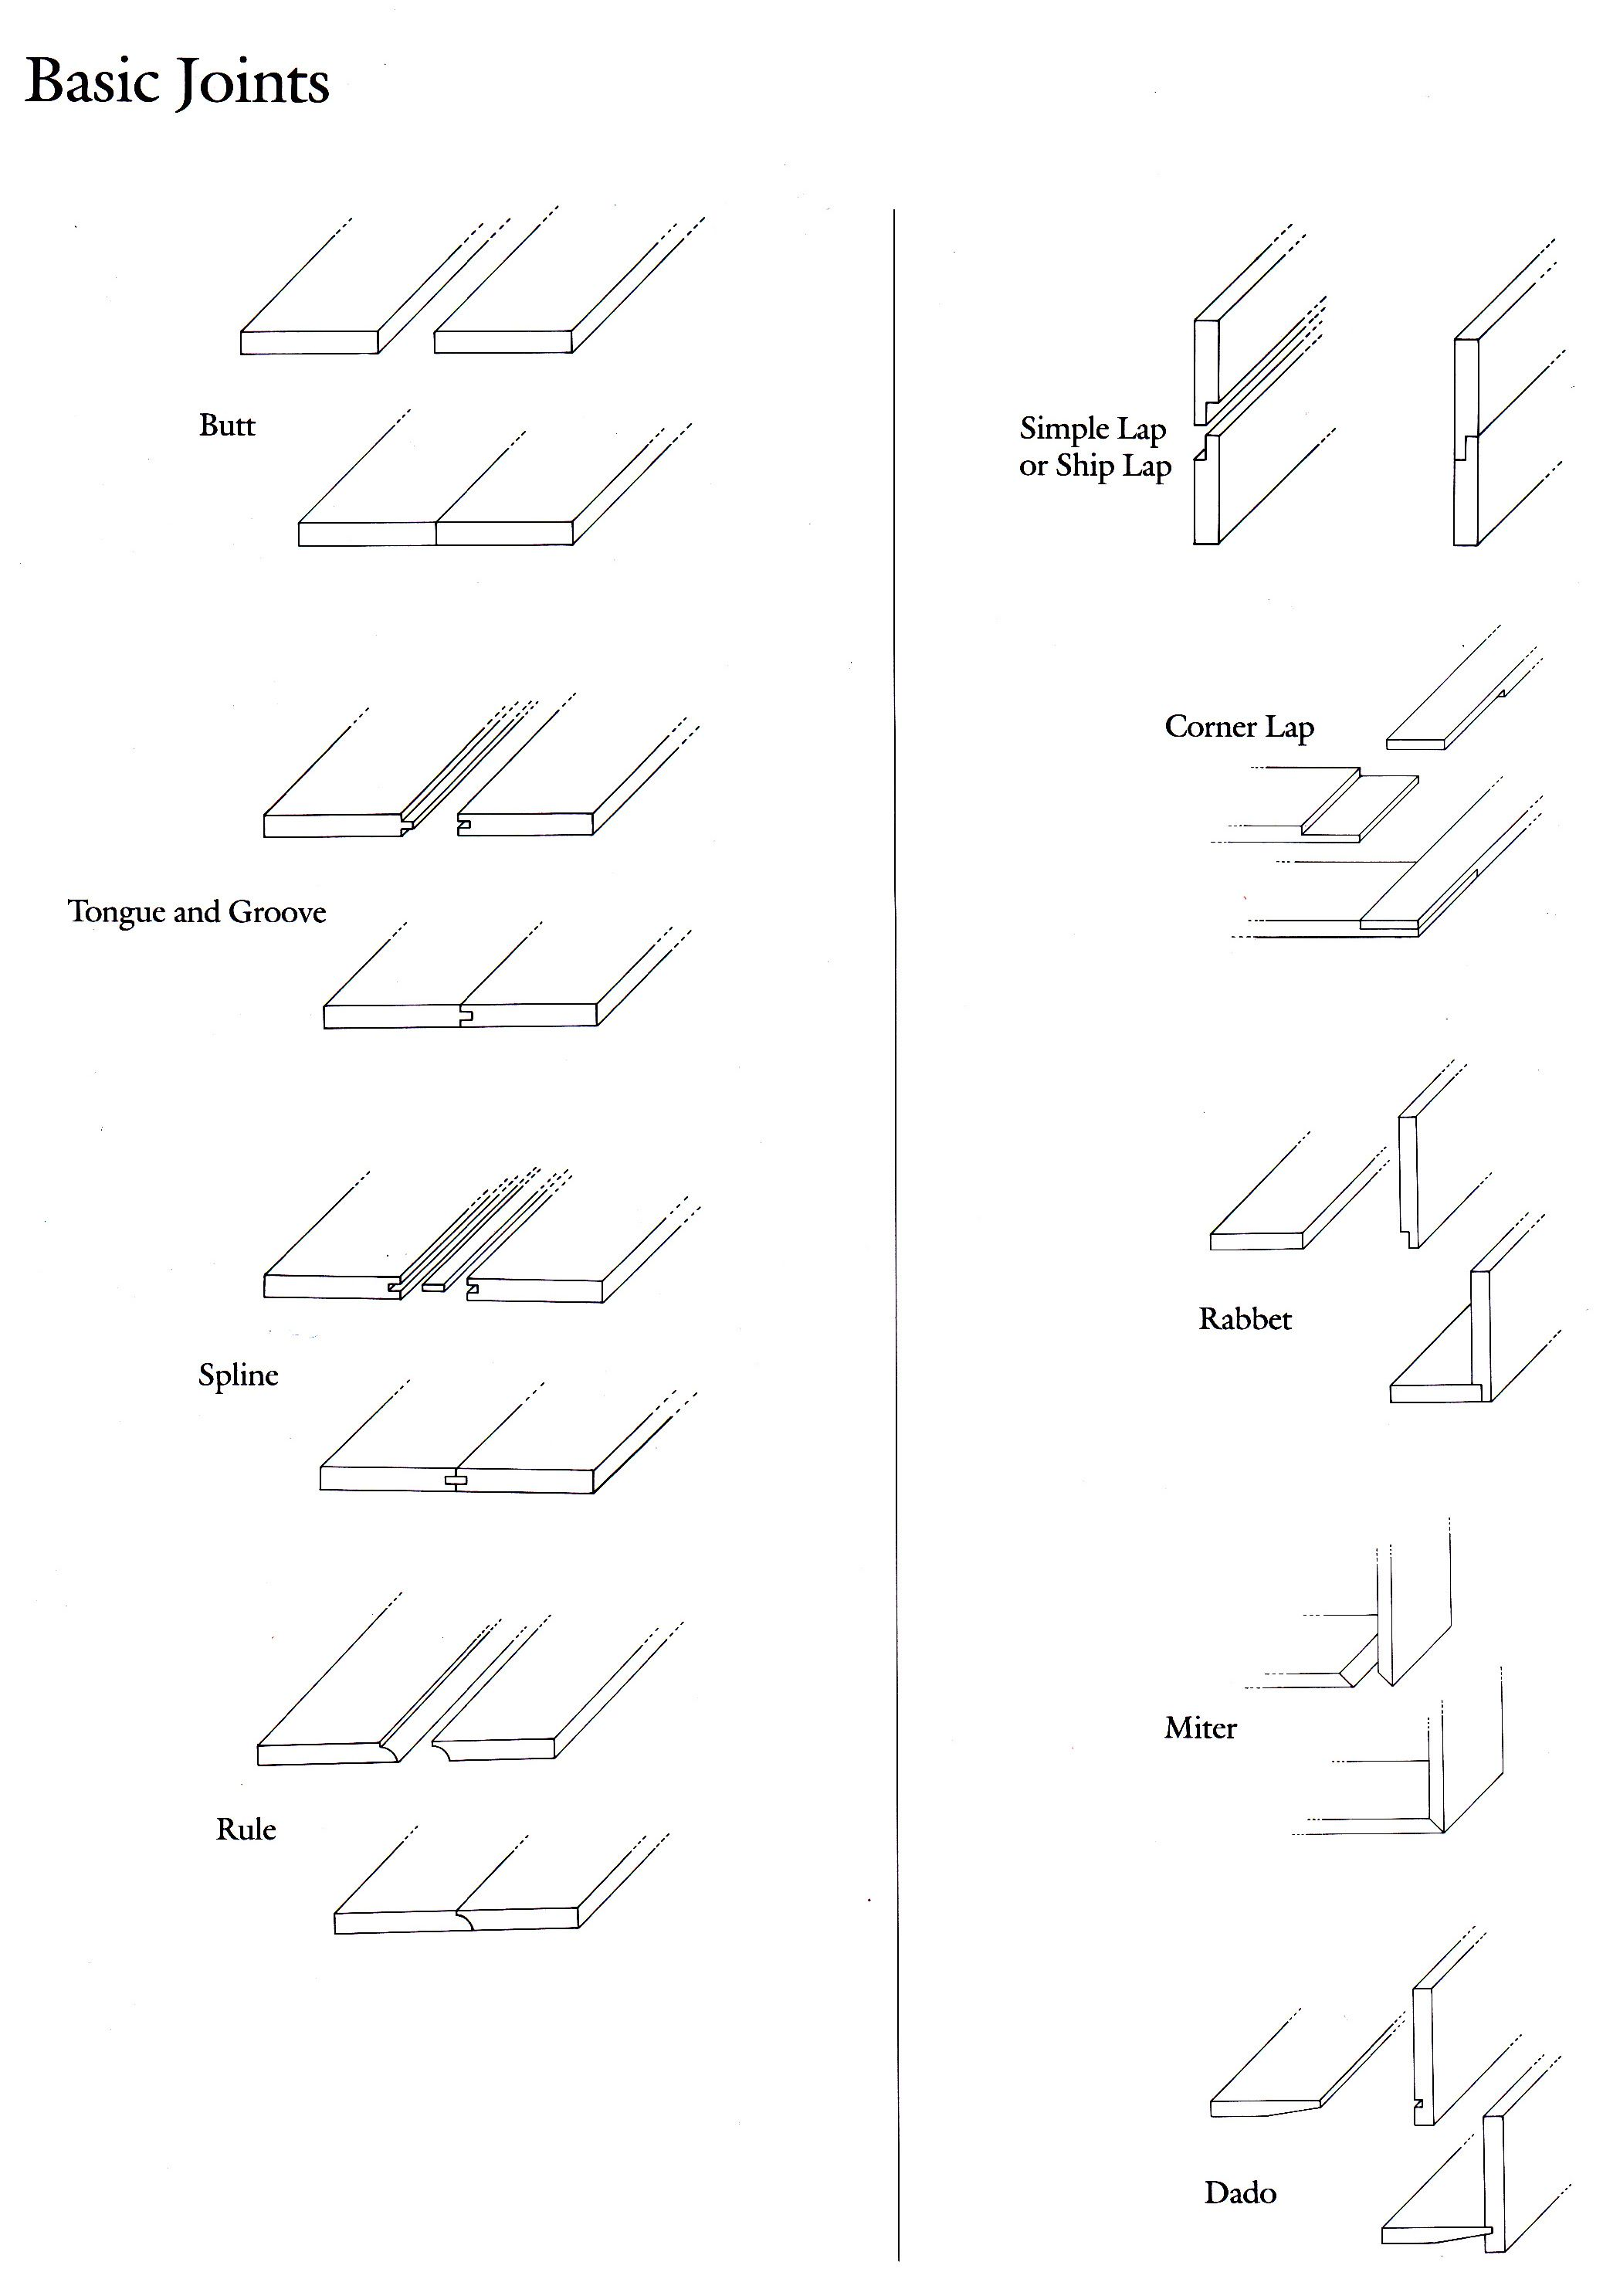 Diagram Of Basic Joints